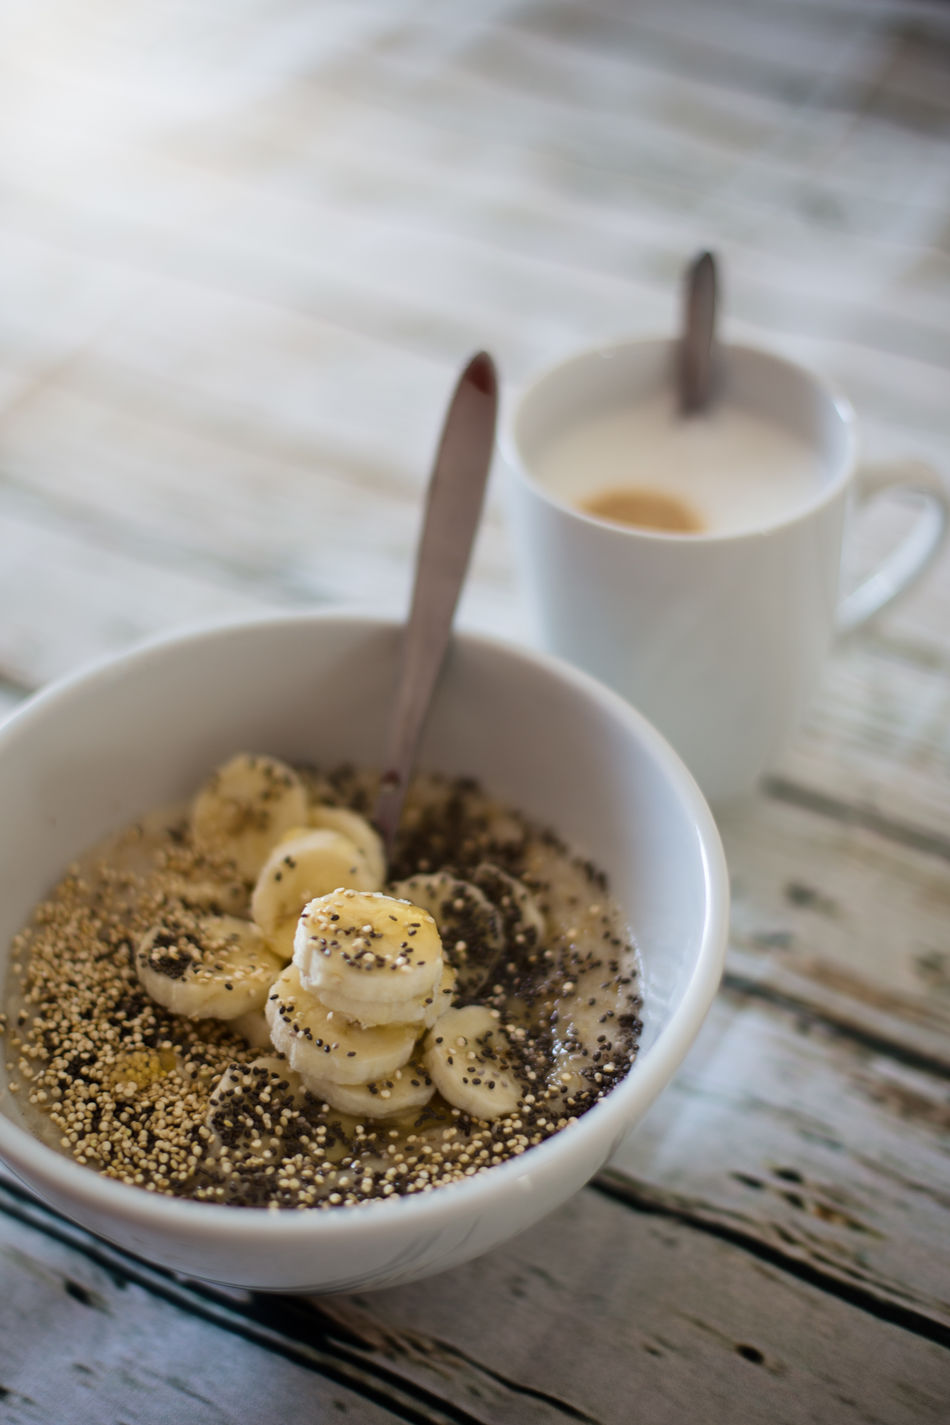 Bowl Breakfast Breakfast Time Breakfast ♥ Cappuccino Chia Seeds Close-up Coffee Coffee Time Day Drink Indoors  Milk Morning Morning Light No People Porridge Porridge Time Porridge! Seed Vertical